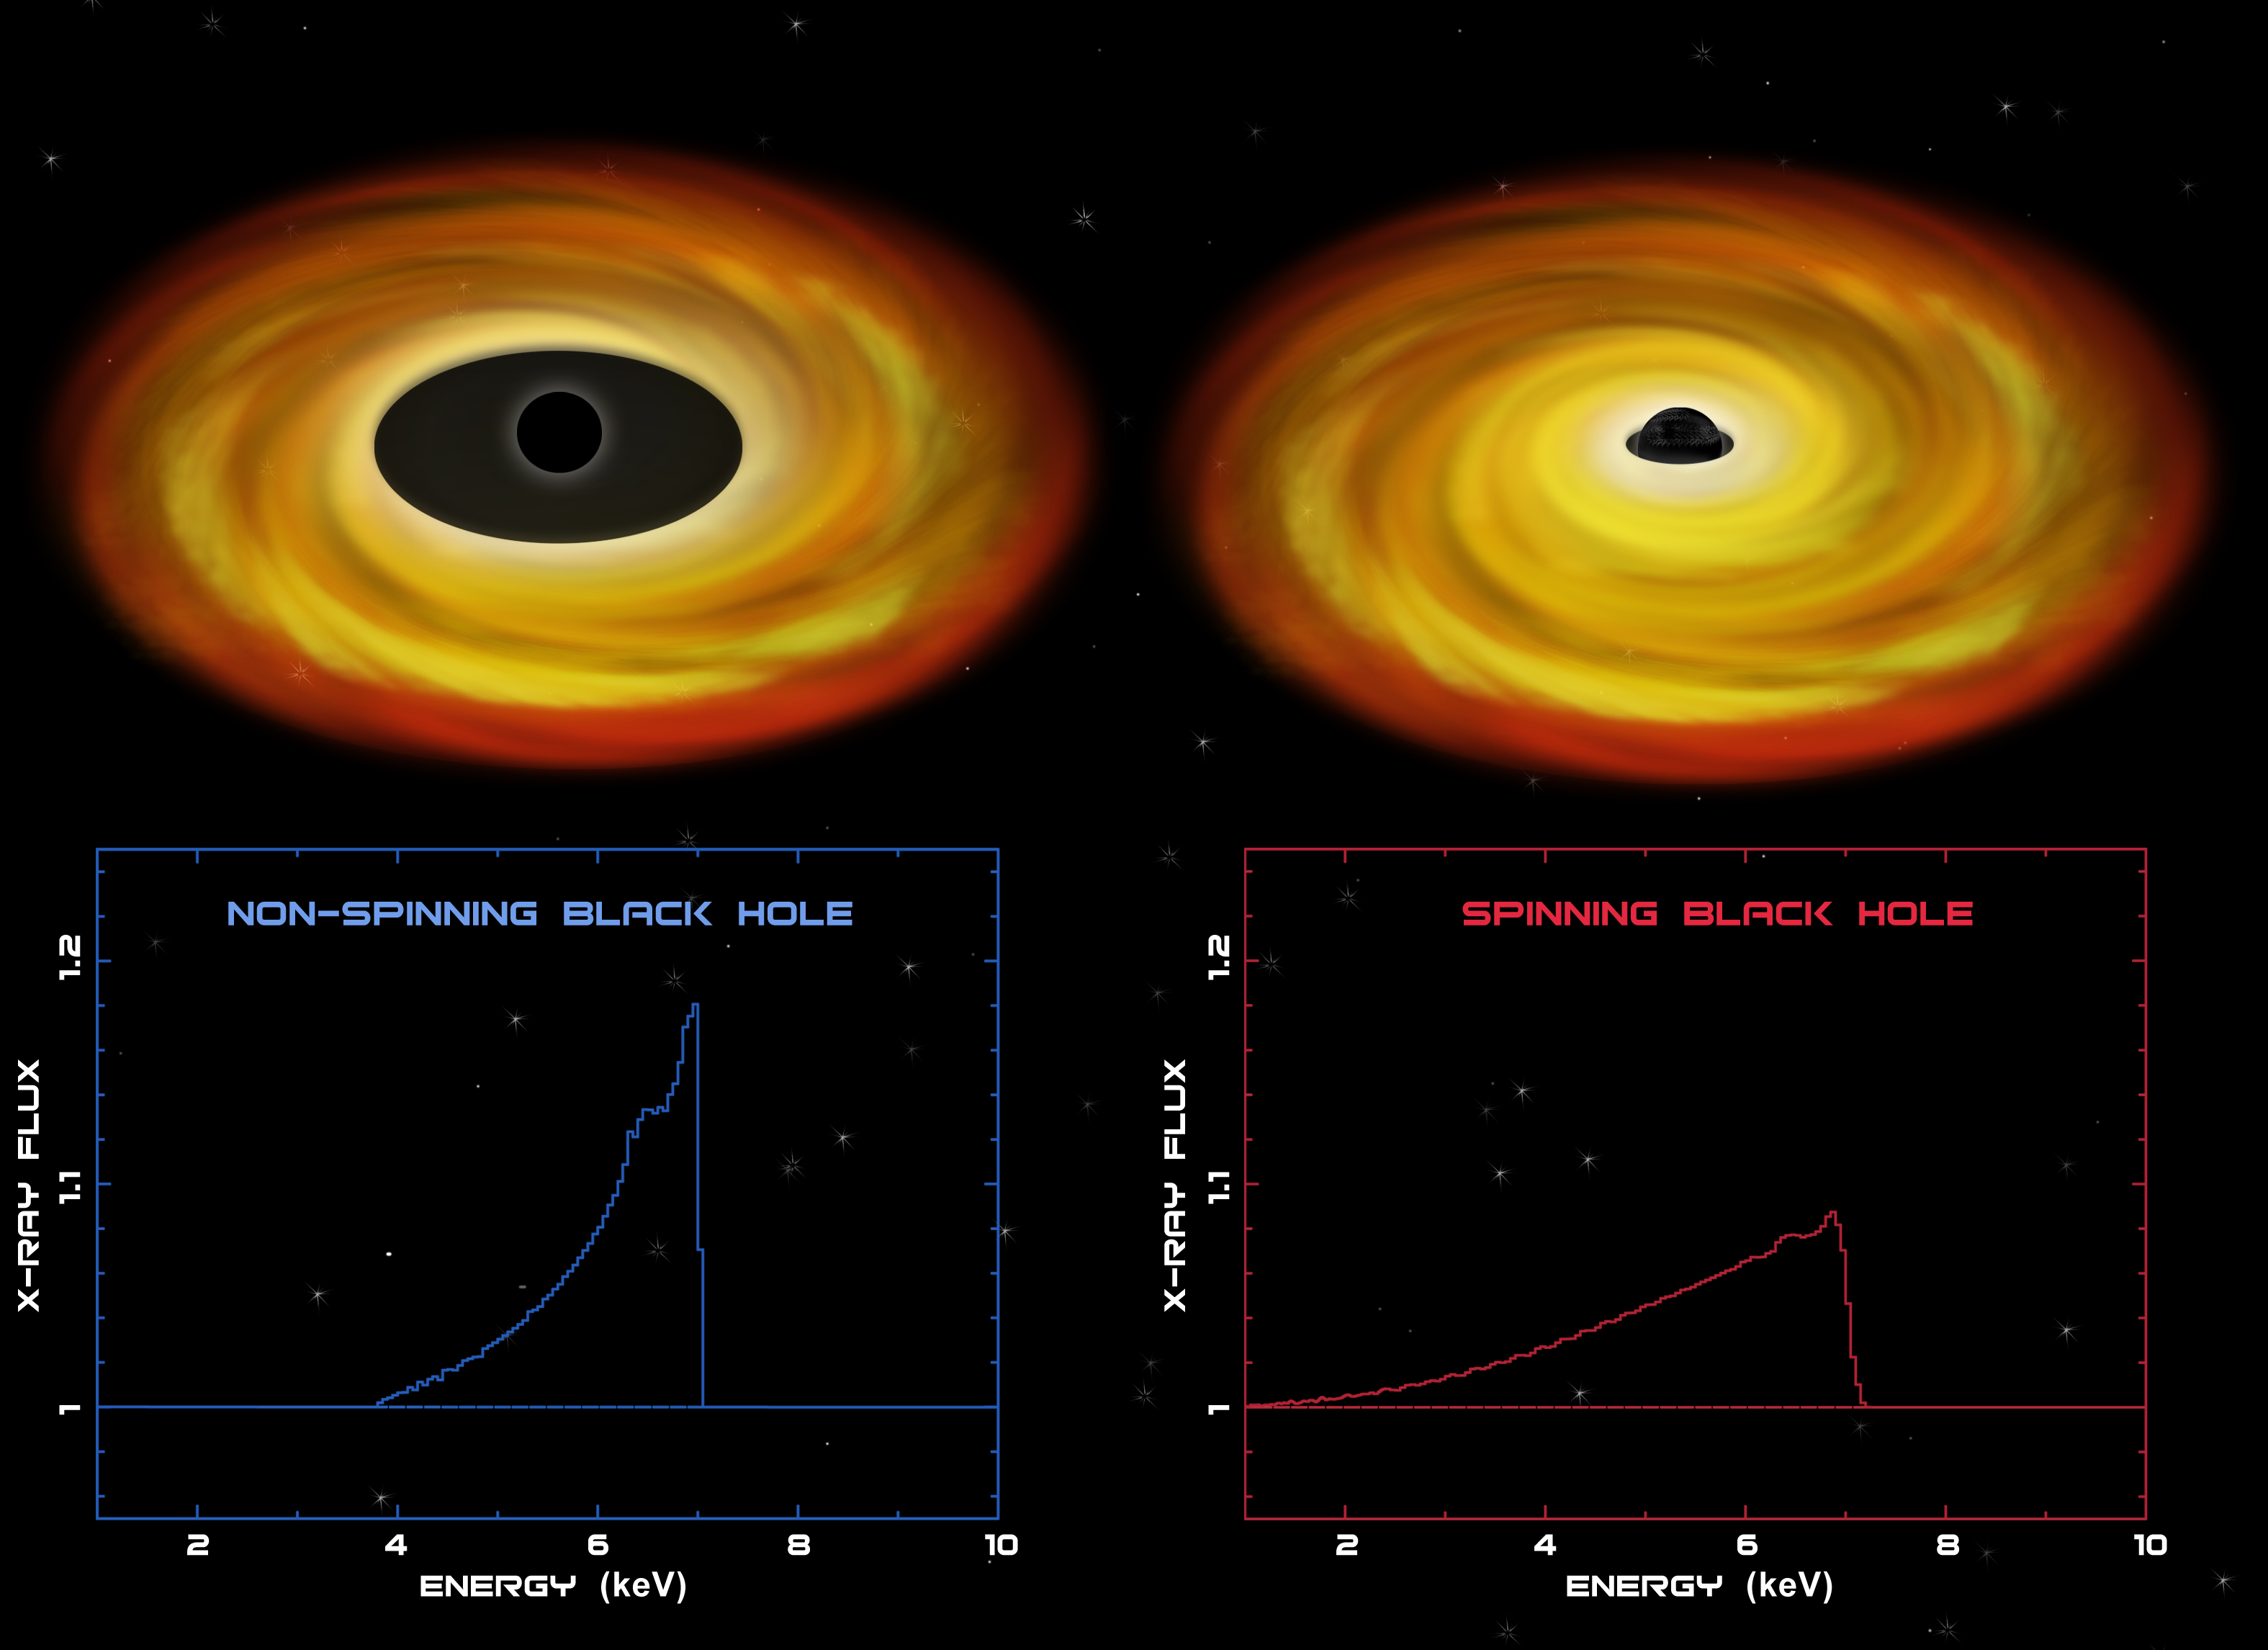 NASA - 'Iron-clad' evidence for spinning black hole ...